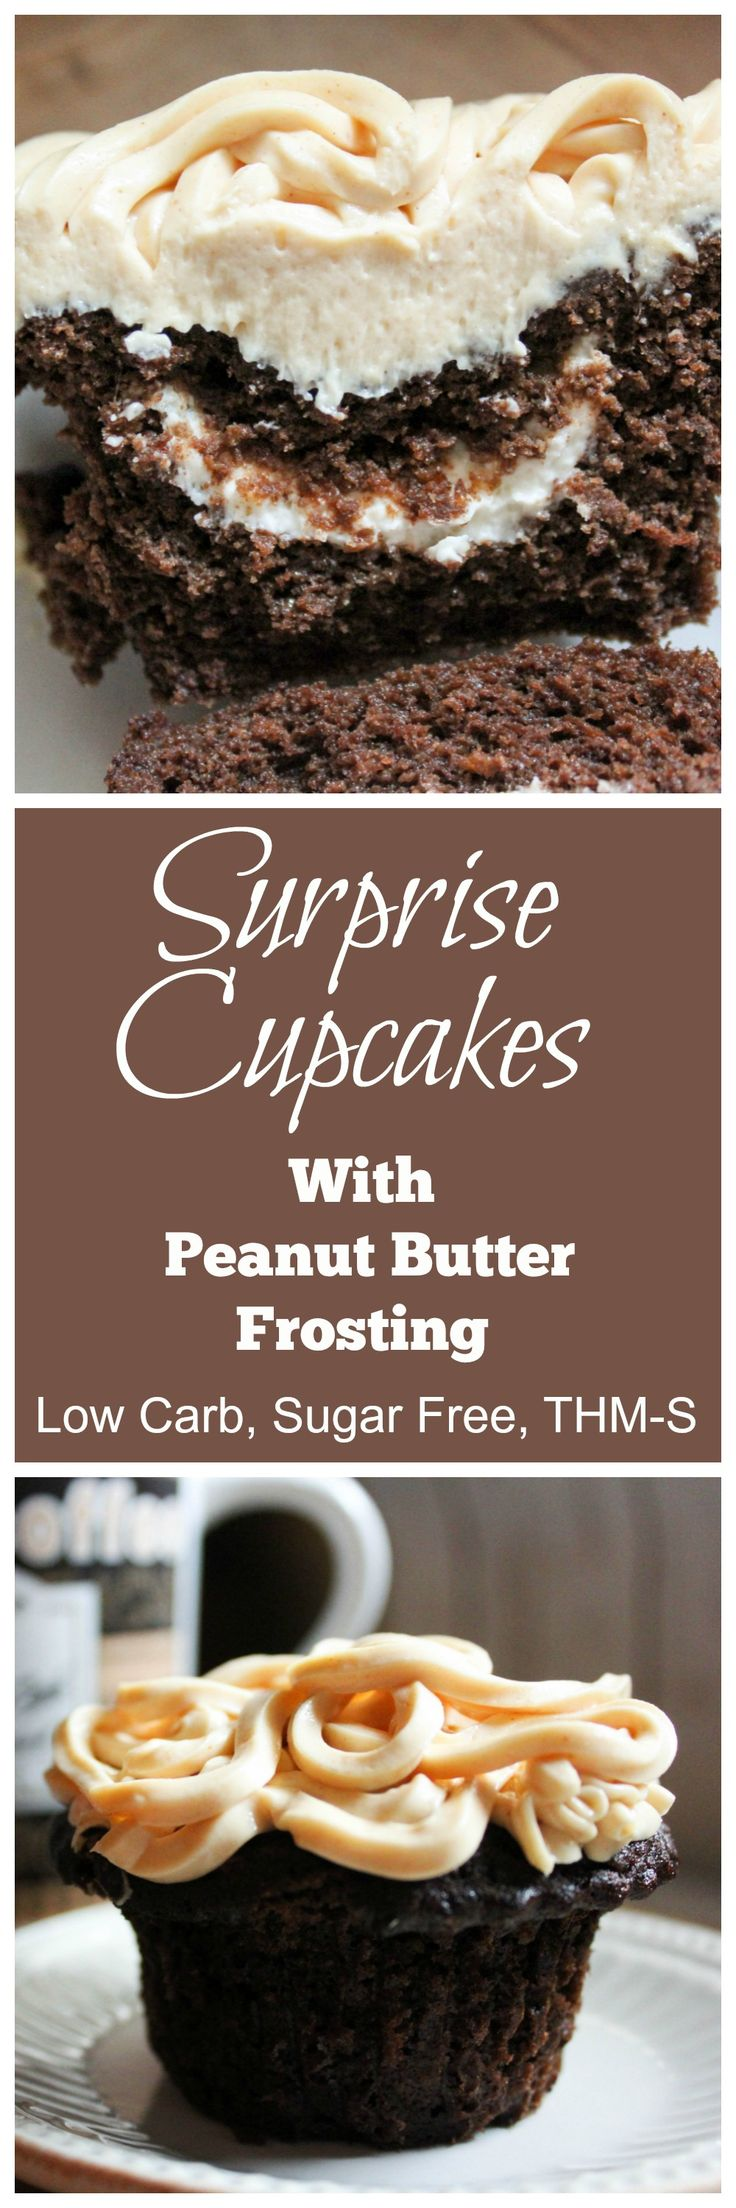 Surprise Cupcakes with Peanut Butter Frosting {THM-S, Low Carb, Sugar Free}